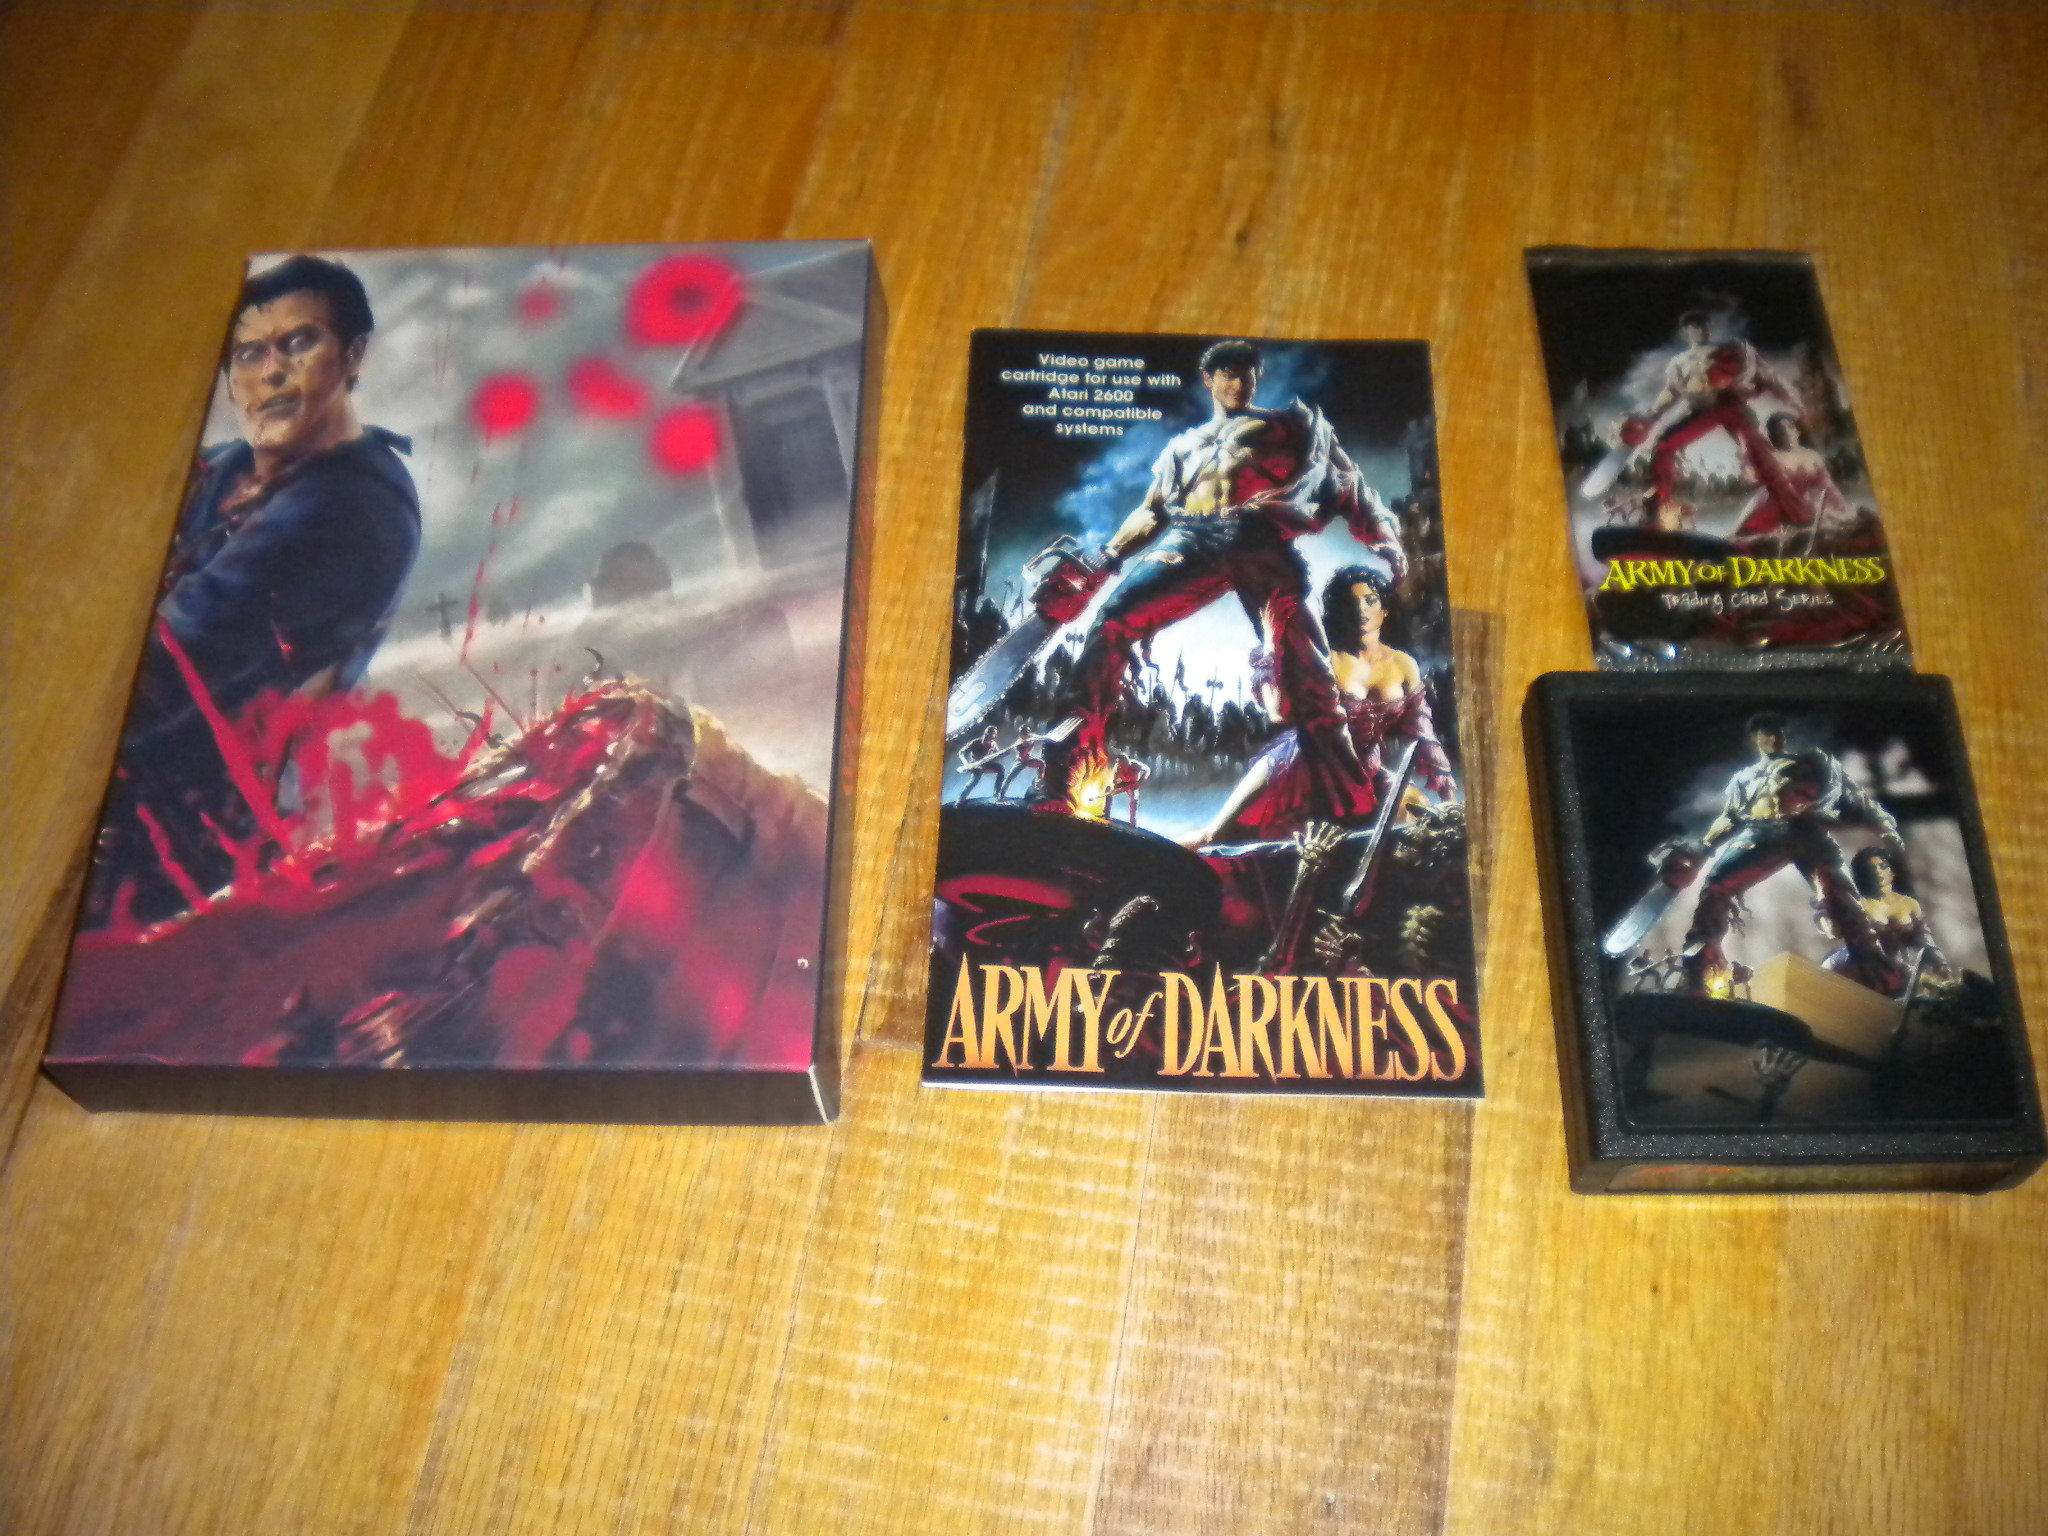 Army Of Darkness 341 points